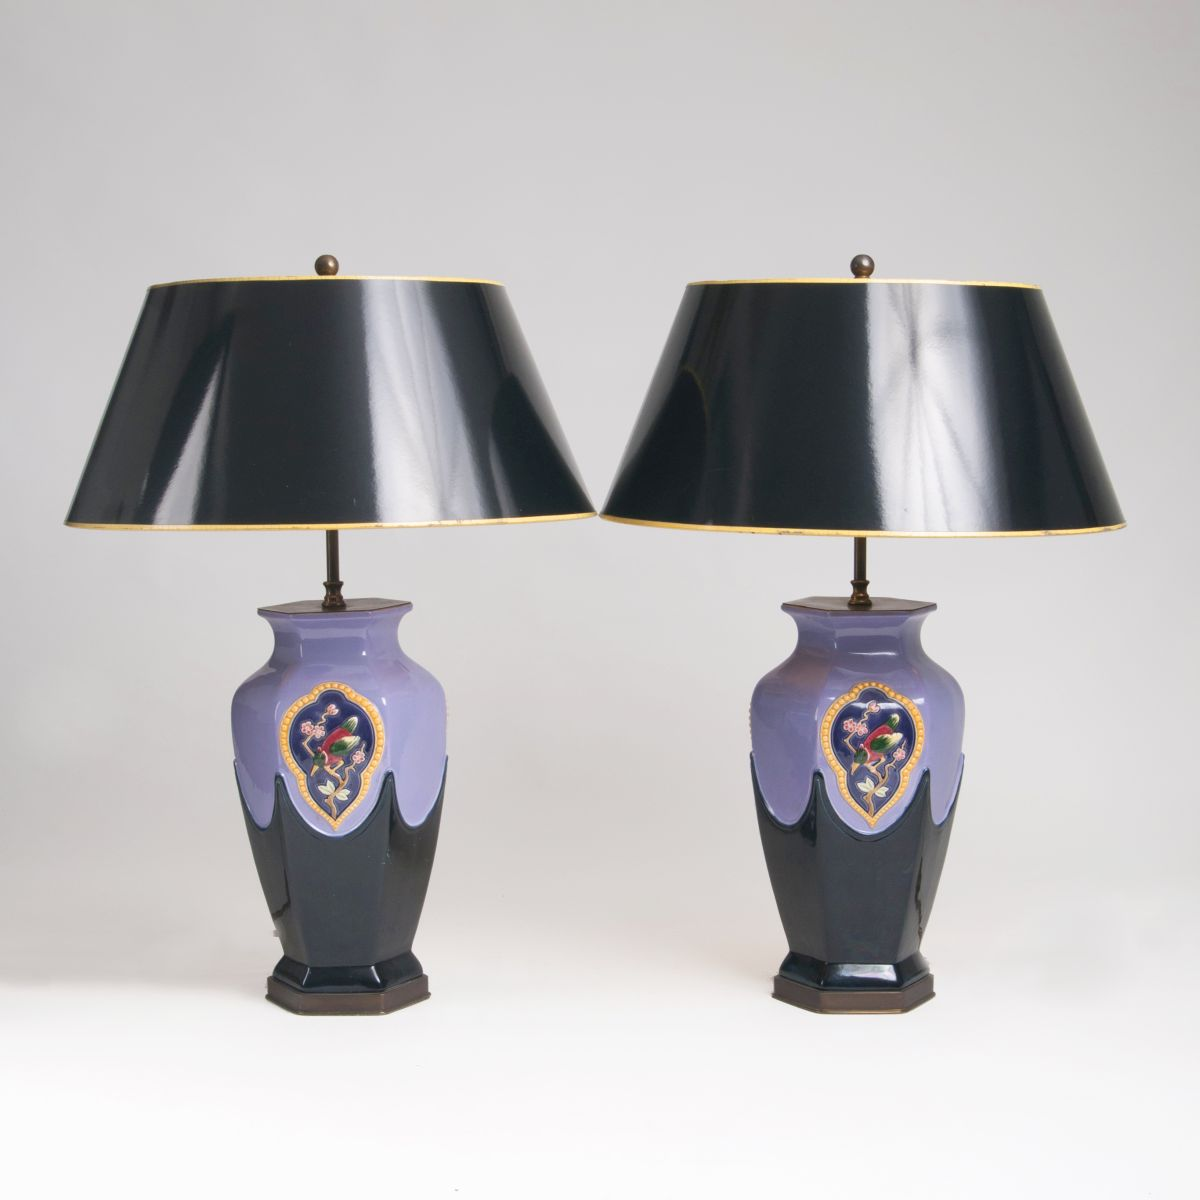 A Pair of Art Deco Majolica Table Lamps